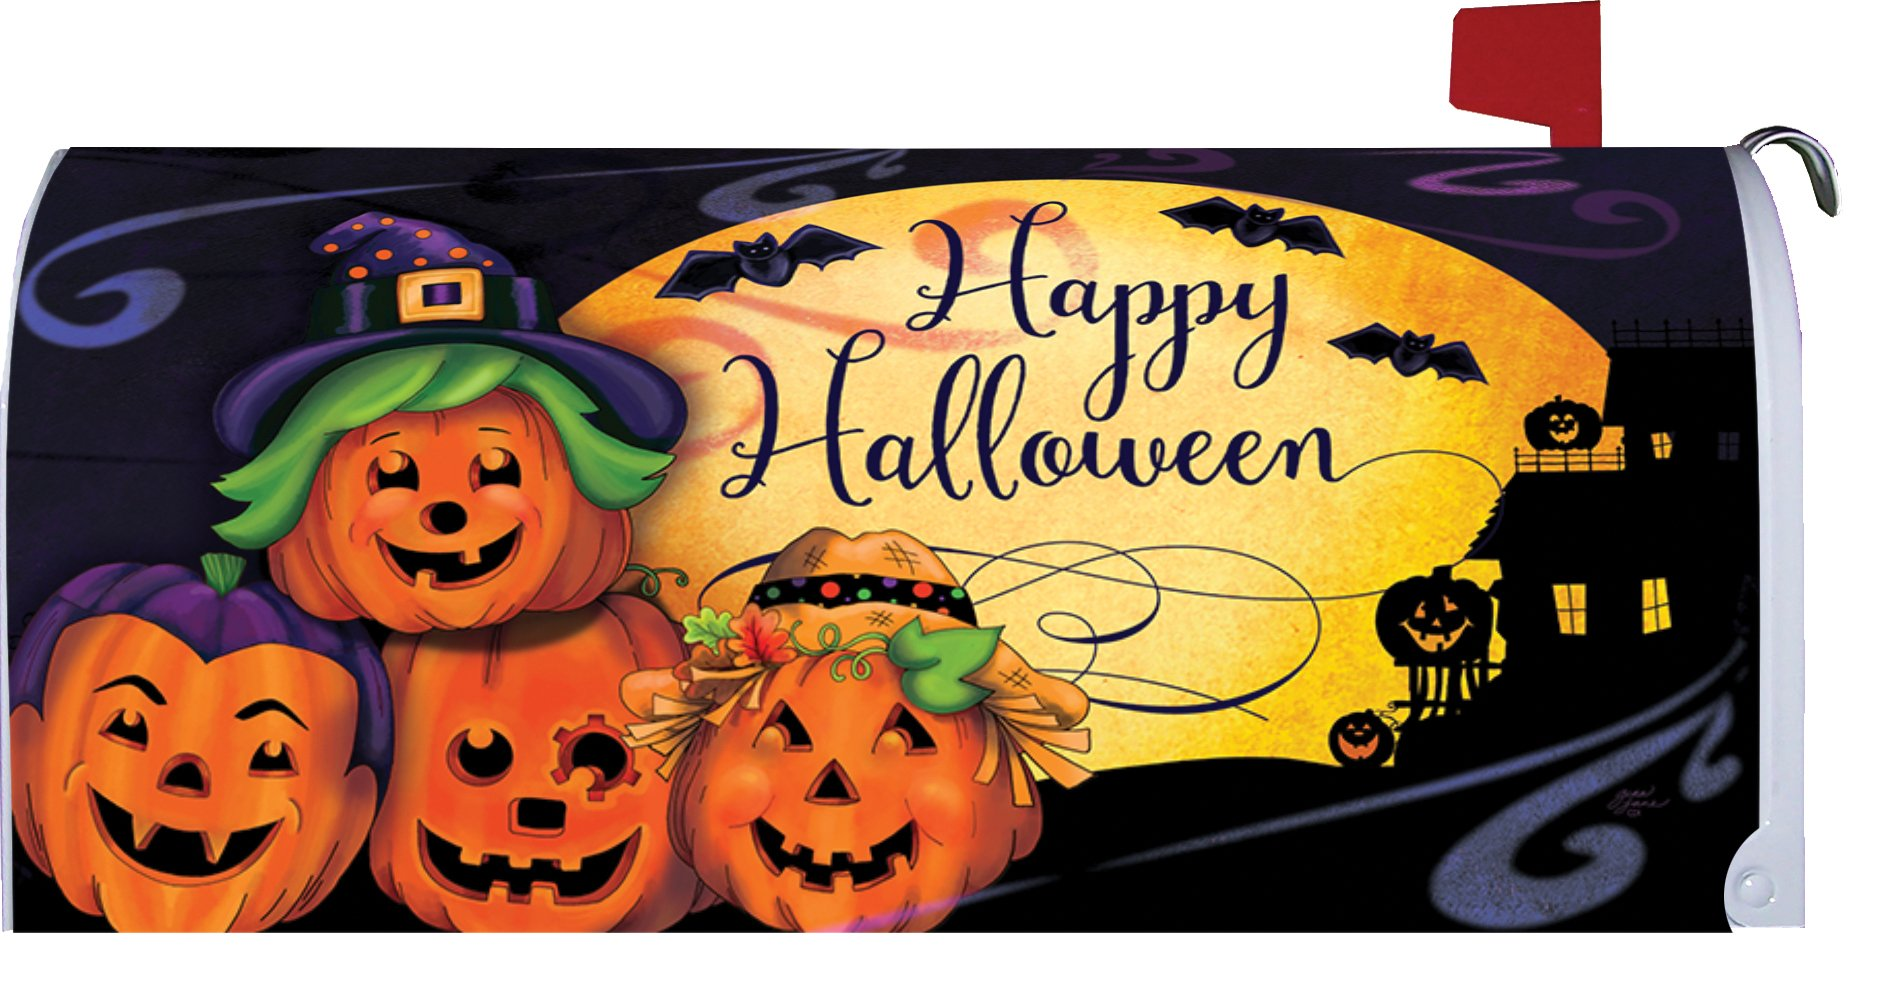 Happy Halloween - Mailbox Makeover - Vinyl with Magnetic Strips - Licensed, Copyrighted and Made in the USA by Custom Decor Inc. by Custom Decor